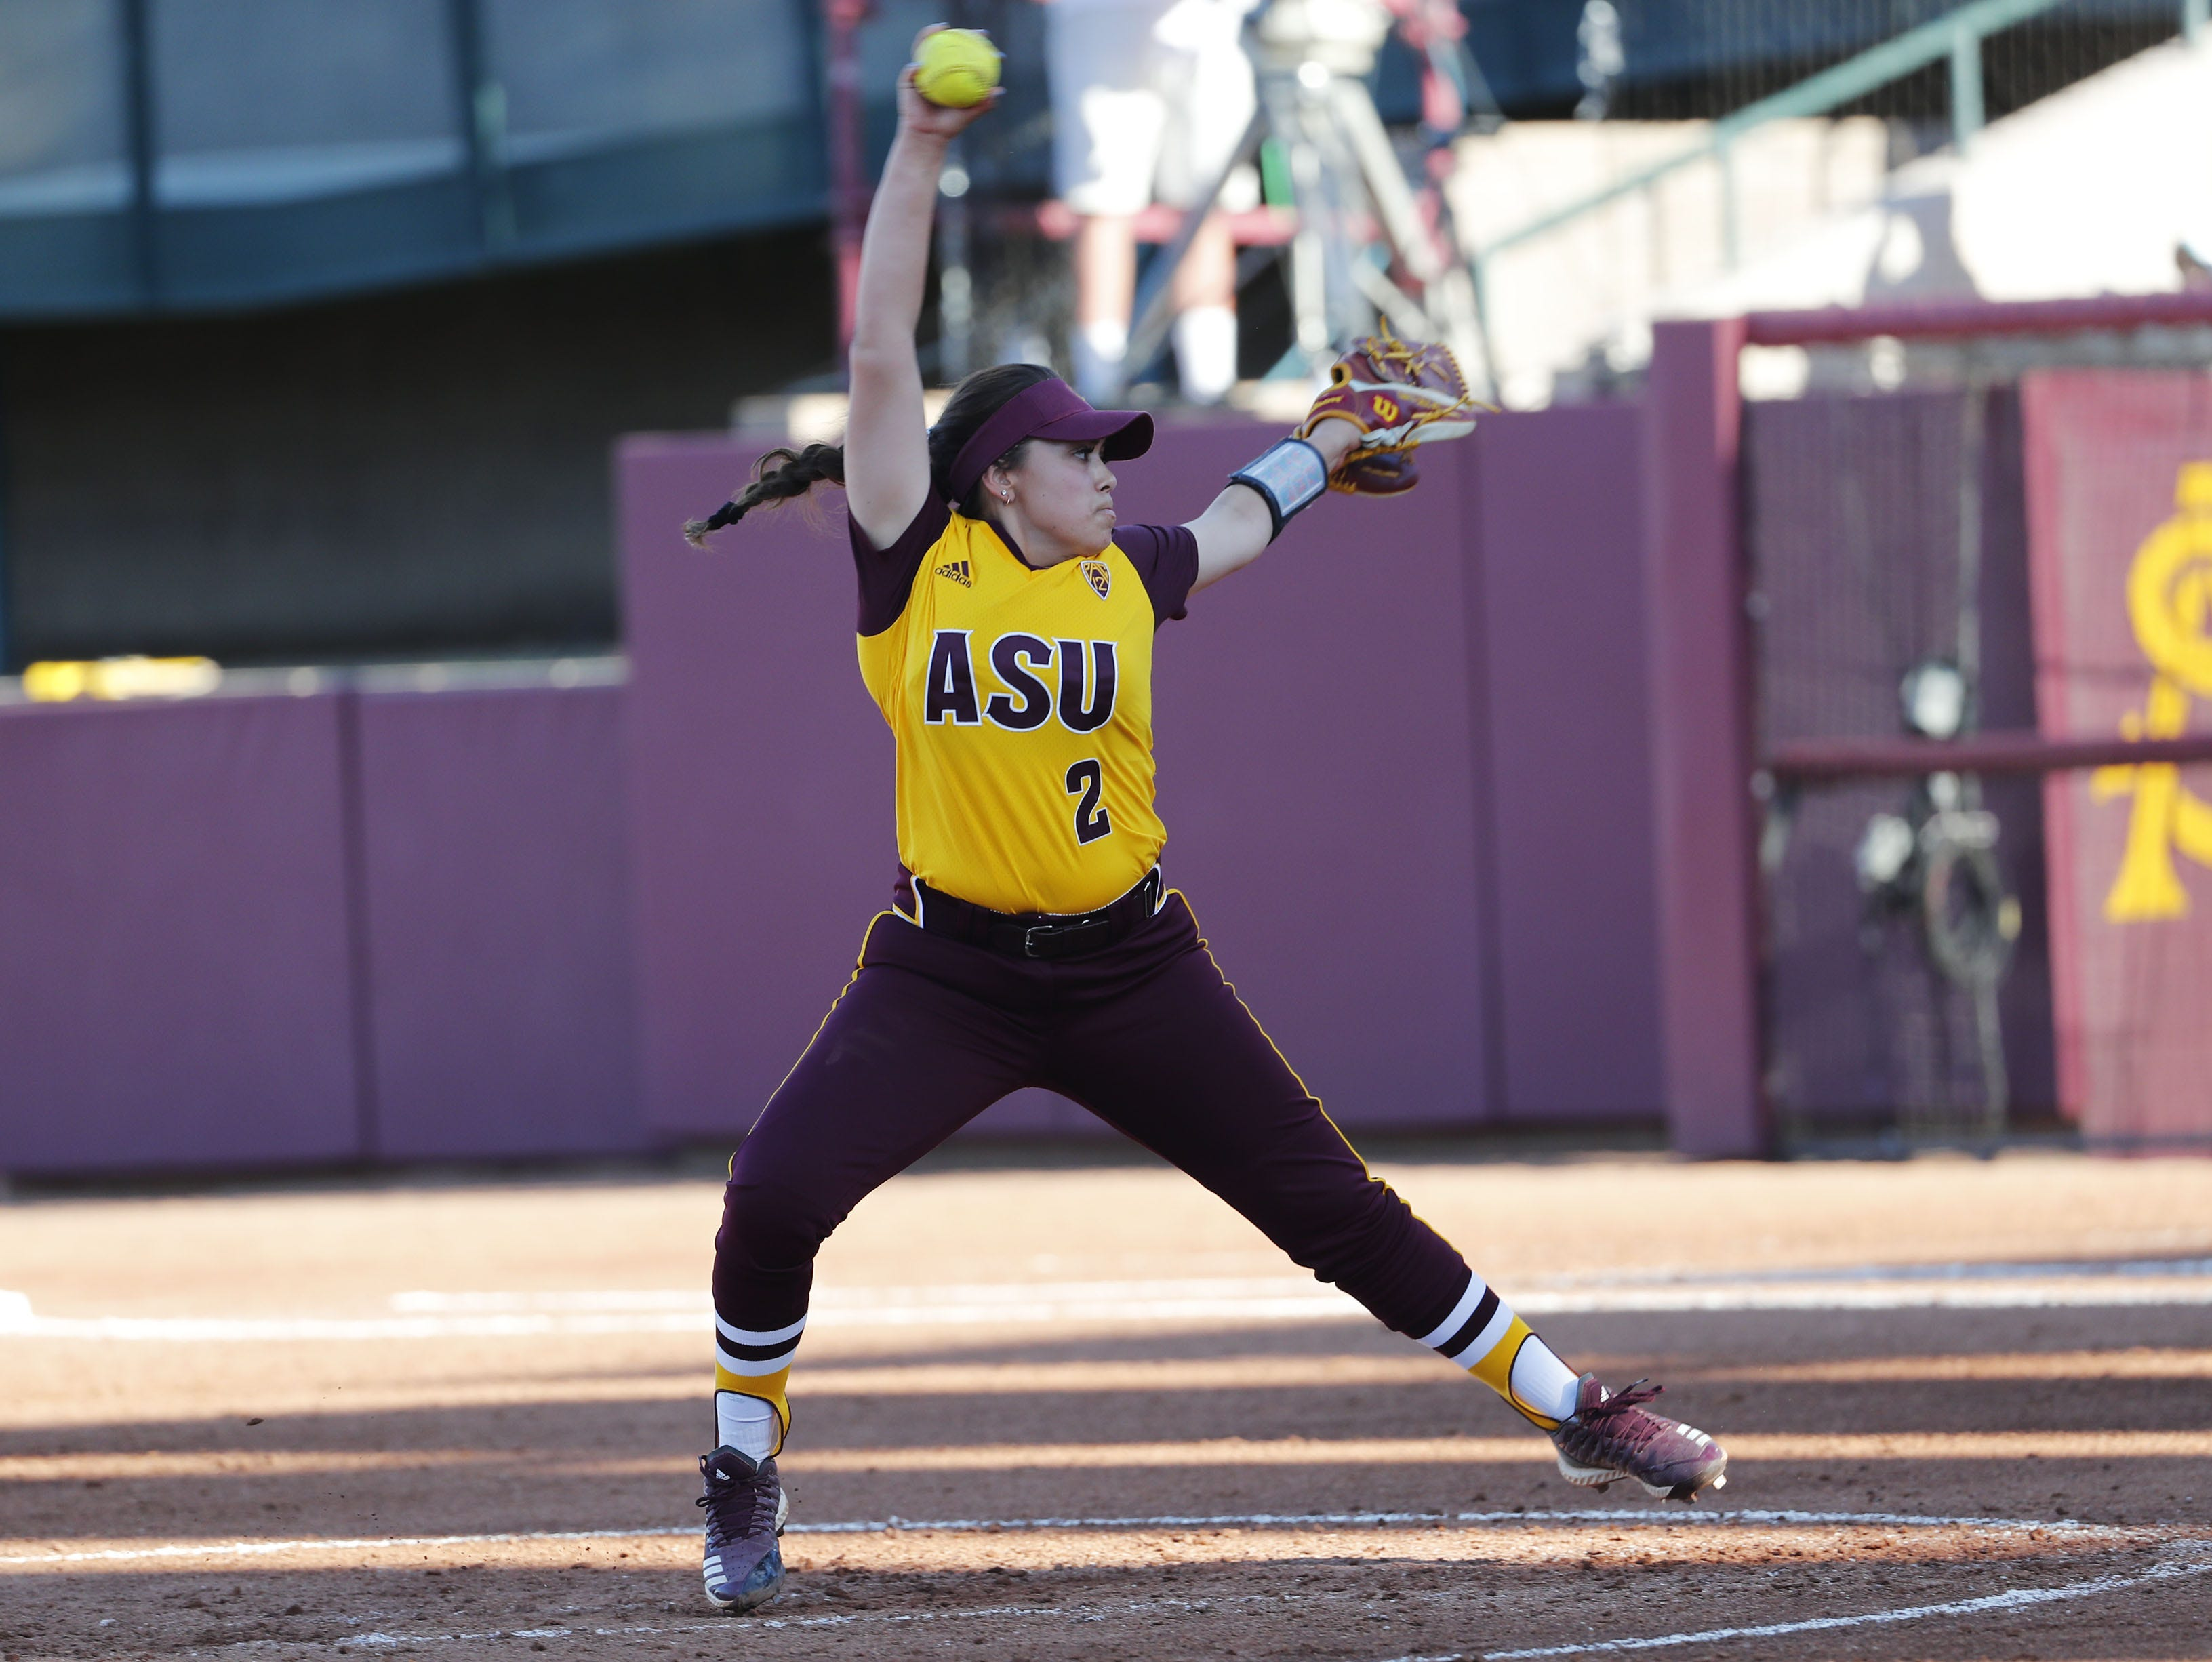 ASU's Mikayla Santa Cruz throws against UCLA during the third inning at Farrington Stadium in Tempe, Ariz. April 7, 2019.